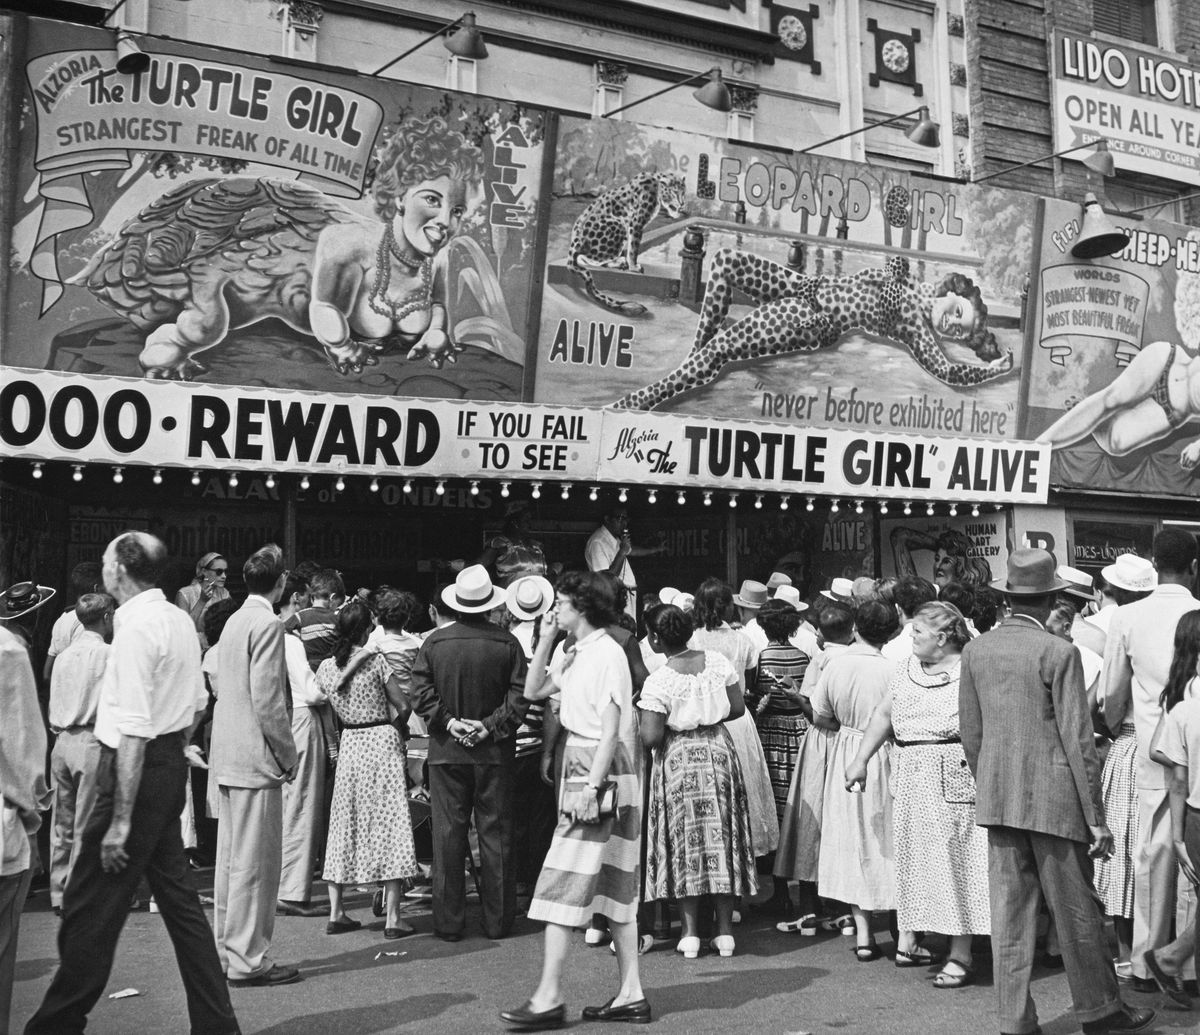 """In a circa 1945 photograph, people wait outside a freak show to see """"The Turtle Girl"""" and """"The Leopard Girl."""" A sign adds, """"Reward if you fail to see 'The Turtle Girl' alive."""""""